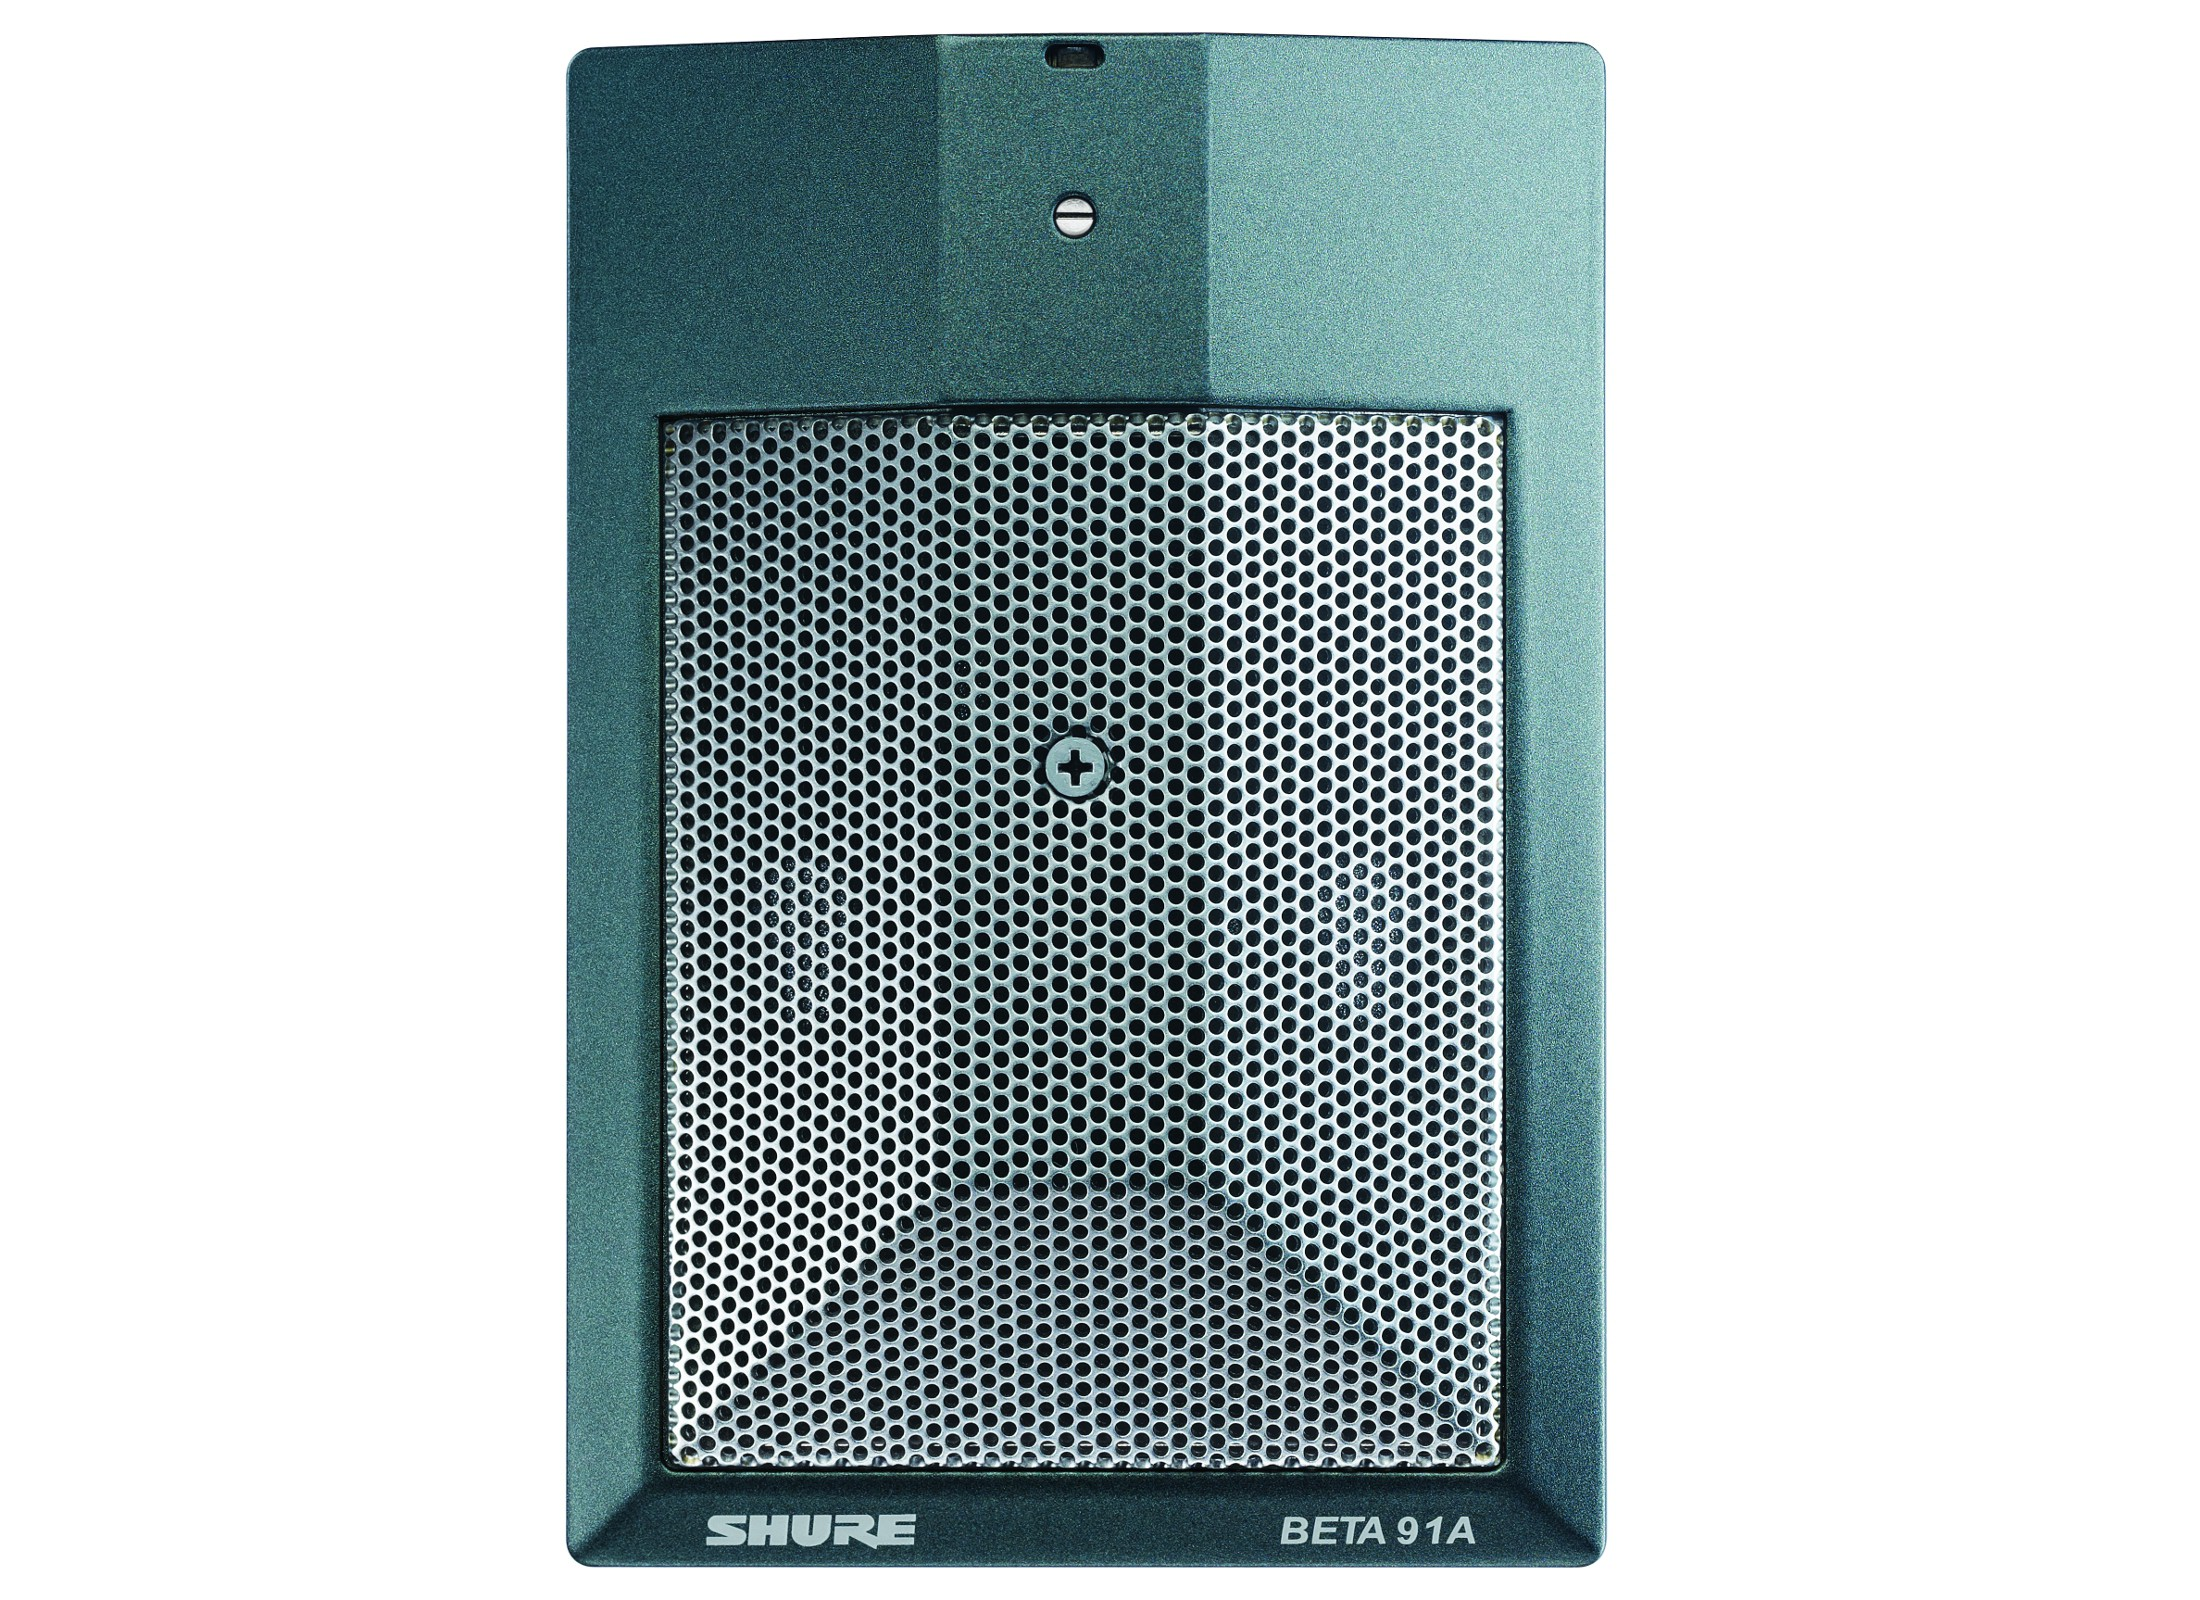 Shure Beta91A Boundary Microphone Online At Low Prices At Huss Light ...